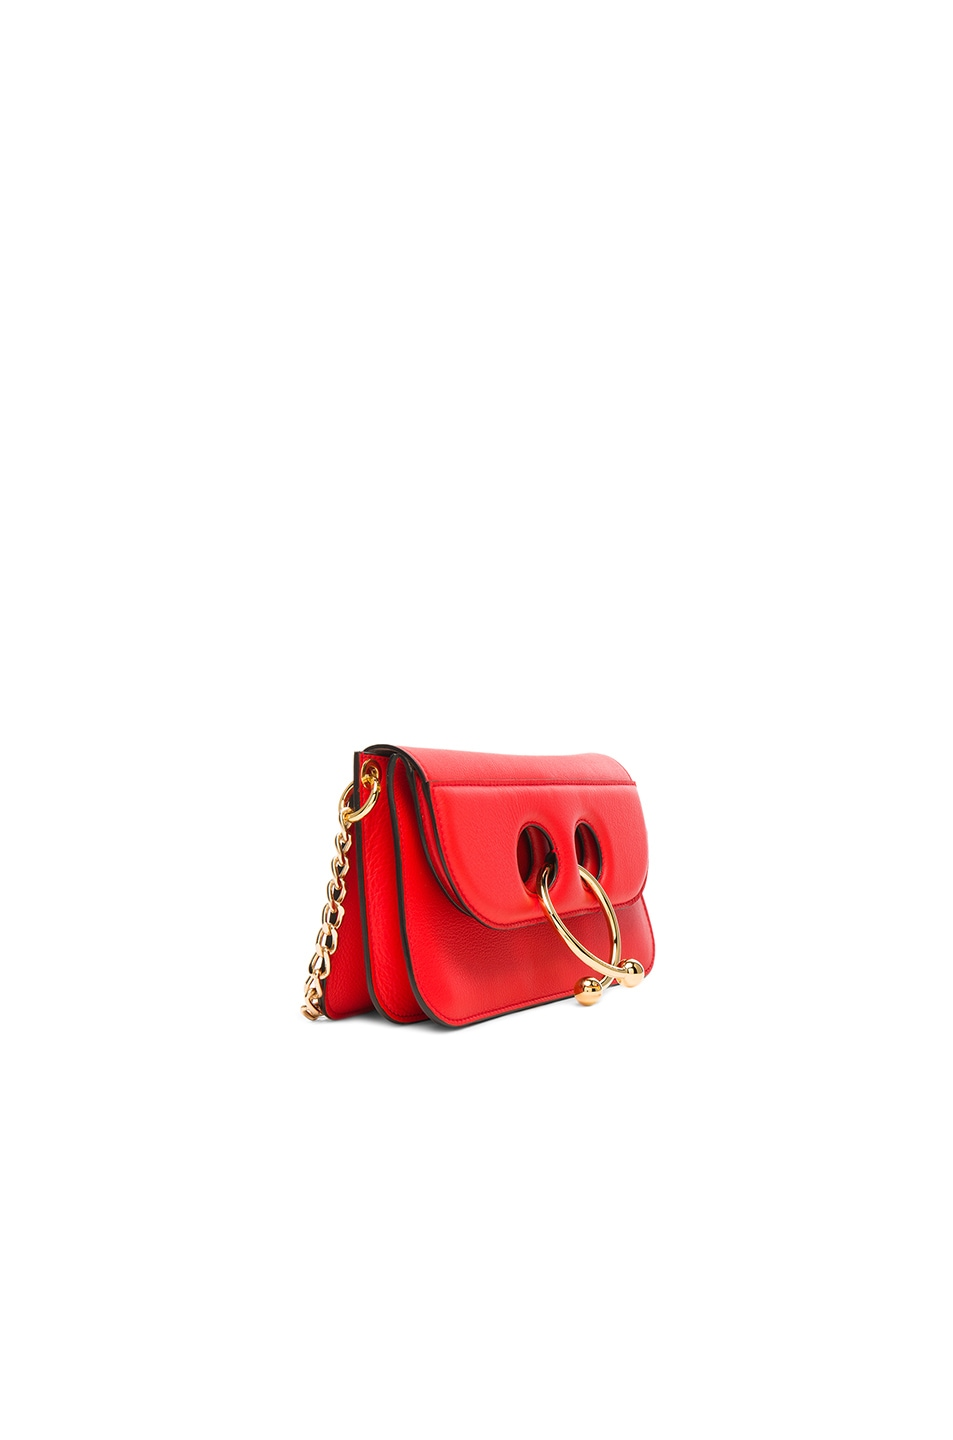 Image 3 of J.W. Anderson Small Pierce Bag in Scarlet